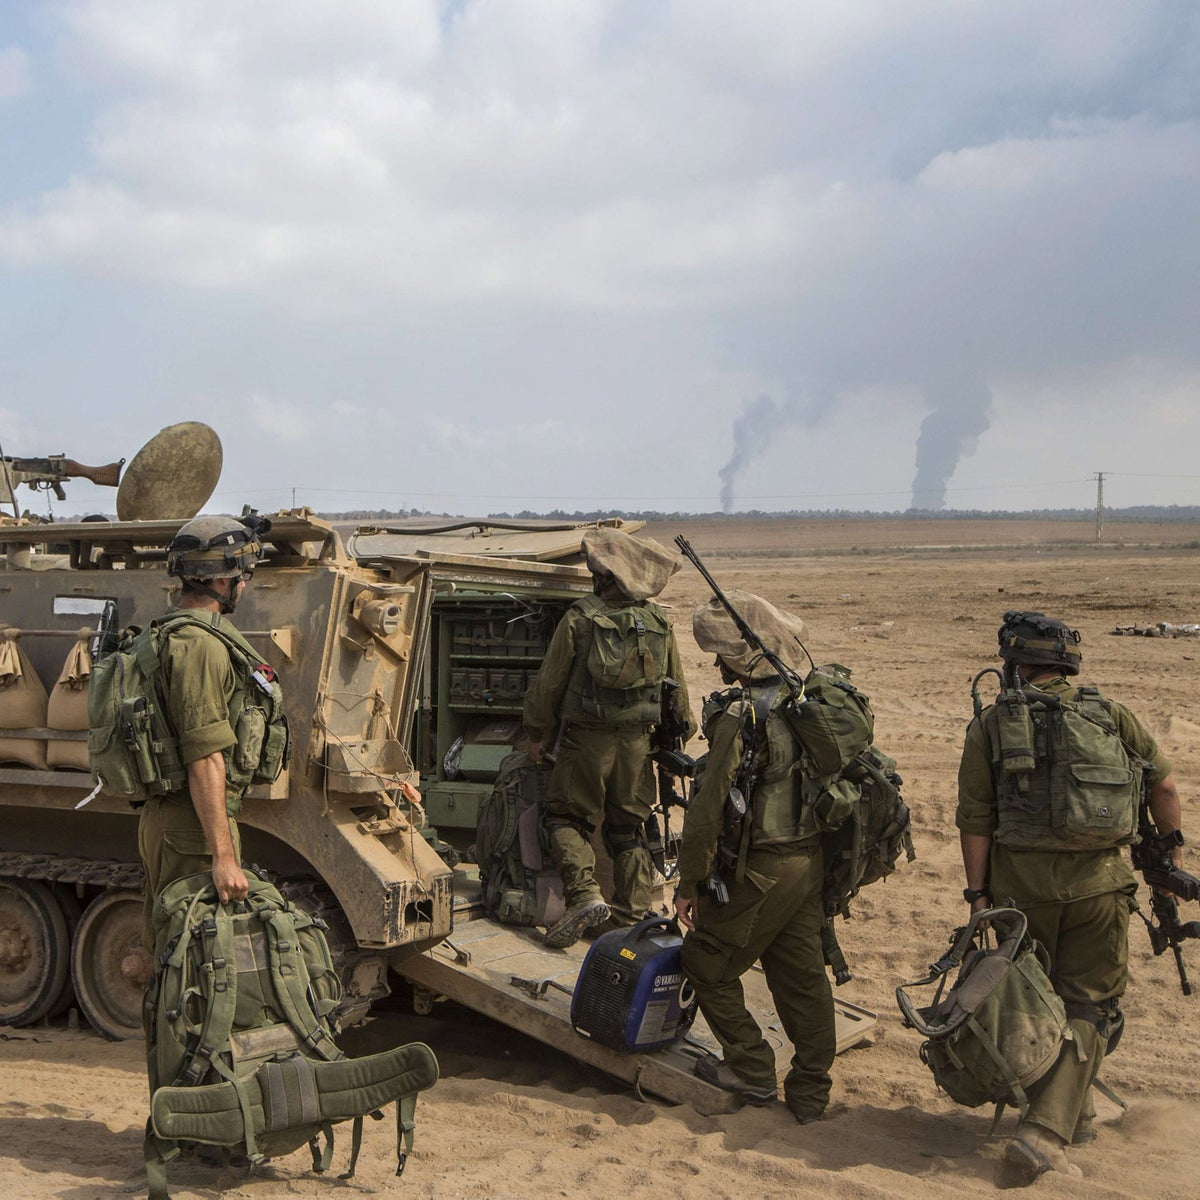 Israeli soldiers prepare for combat in the Gaza Strip during 2014's Operation Protective Edge.